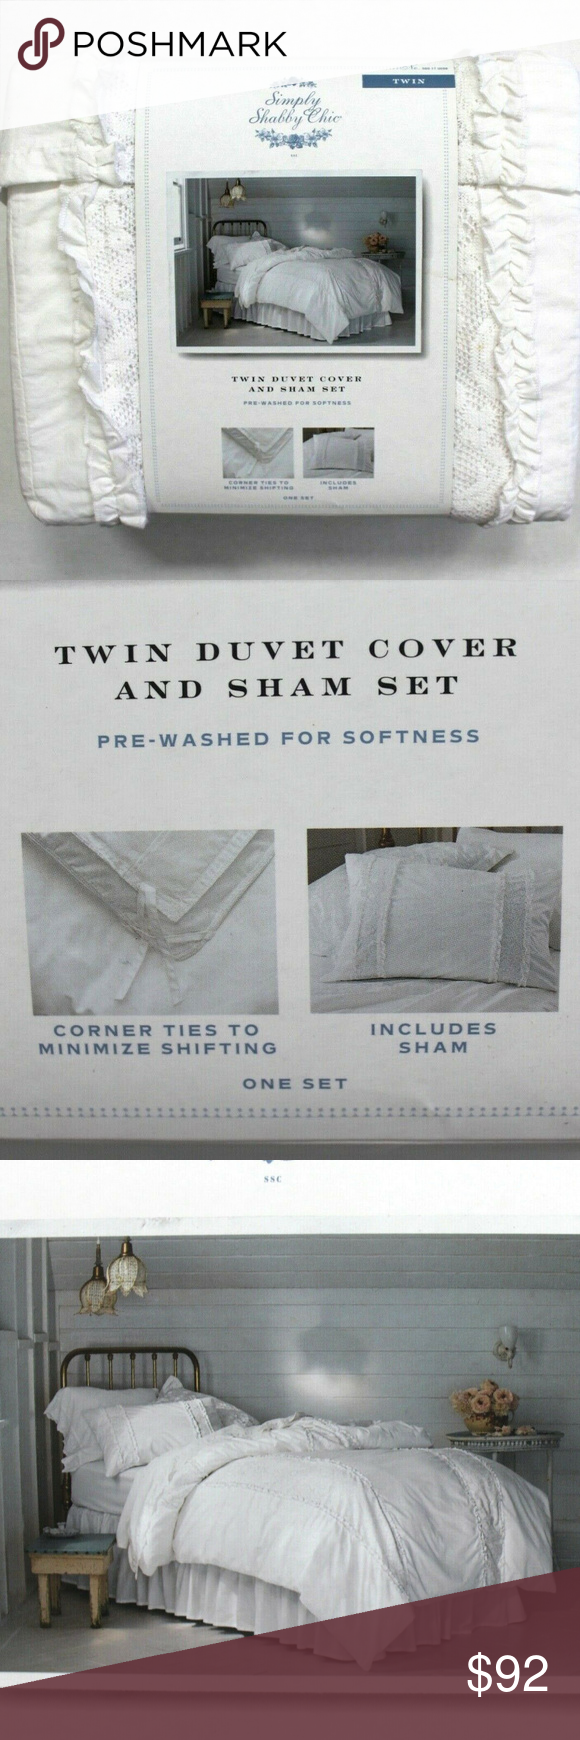 Simply Shabby Chic 2Pc Ruffle Lace Duvet Cover Set Brand new in package Simply Shabby Chic 2 Piece White Ruffle Lace Mesh Duvet Cover 038 1 Sham Size Tw Simply Shabby Chi...